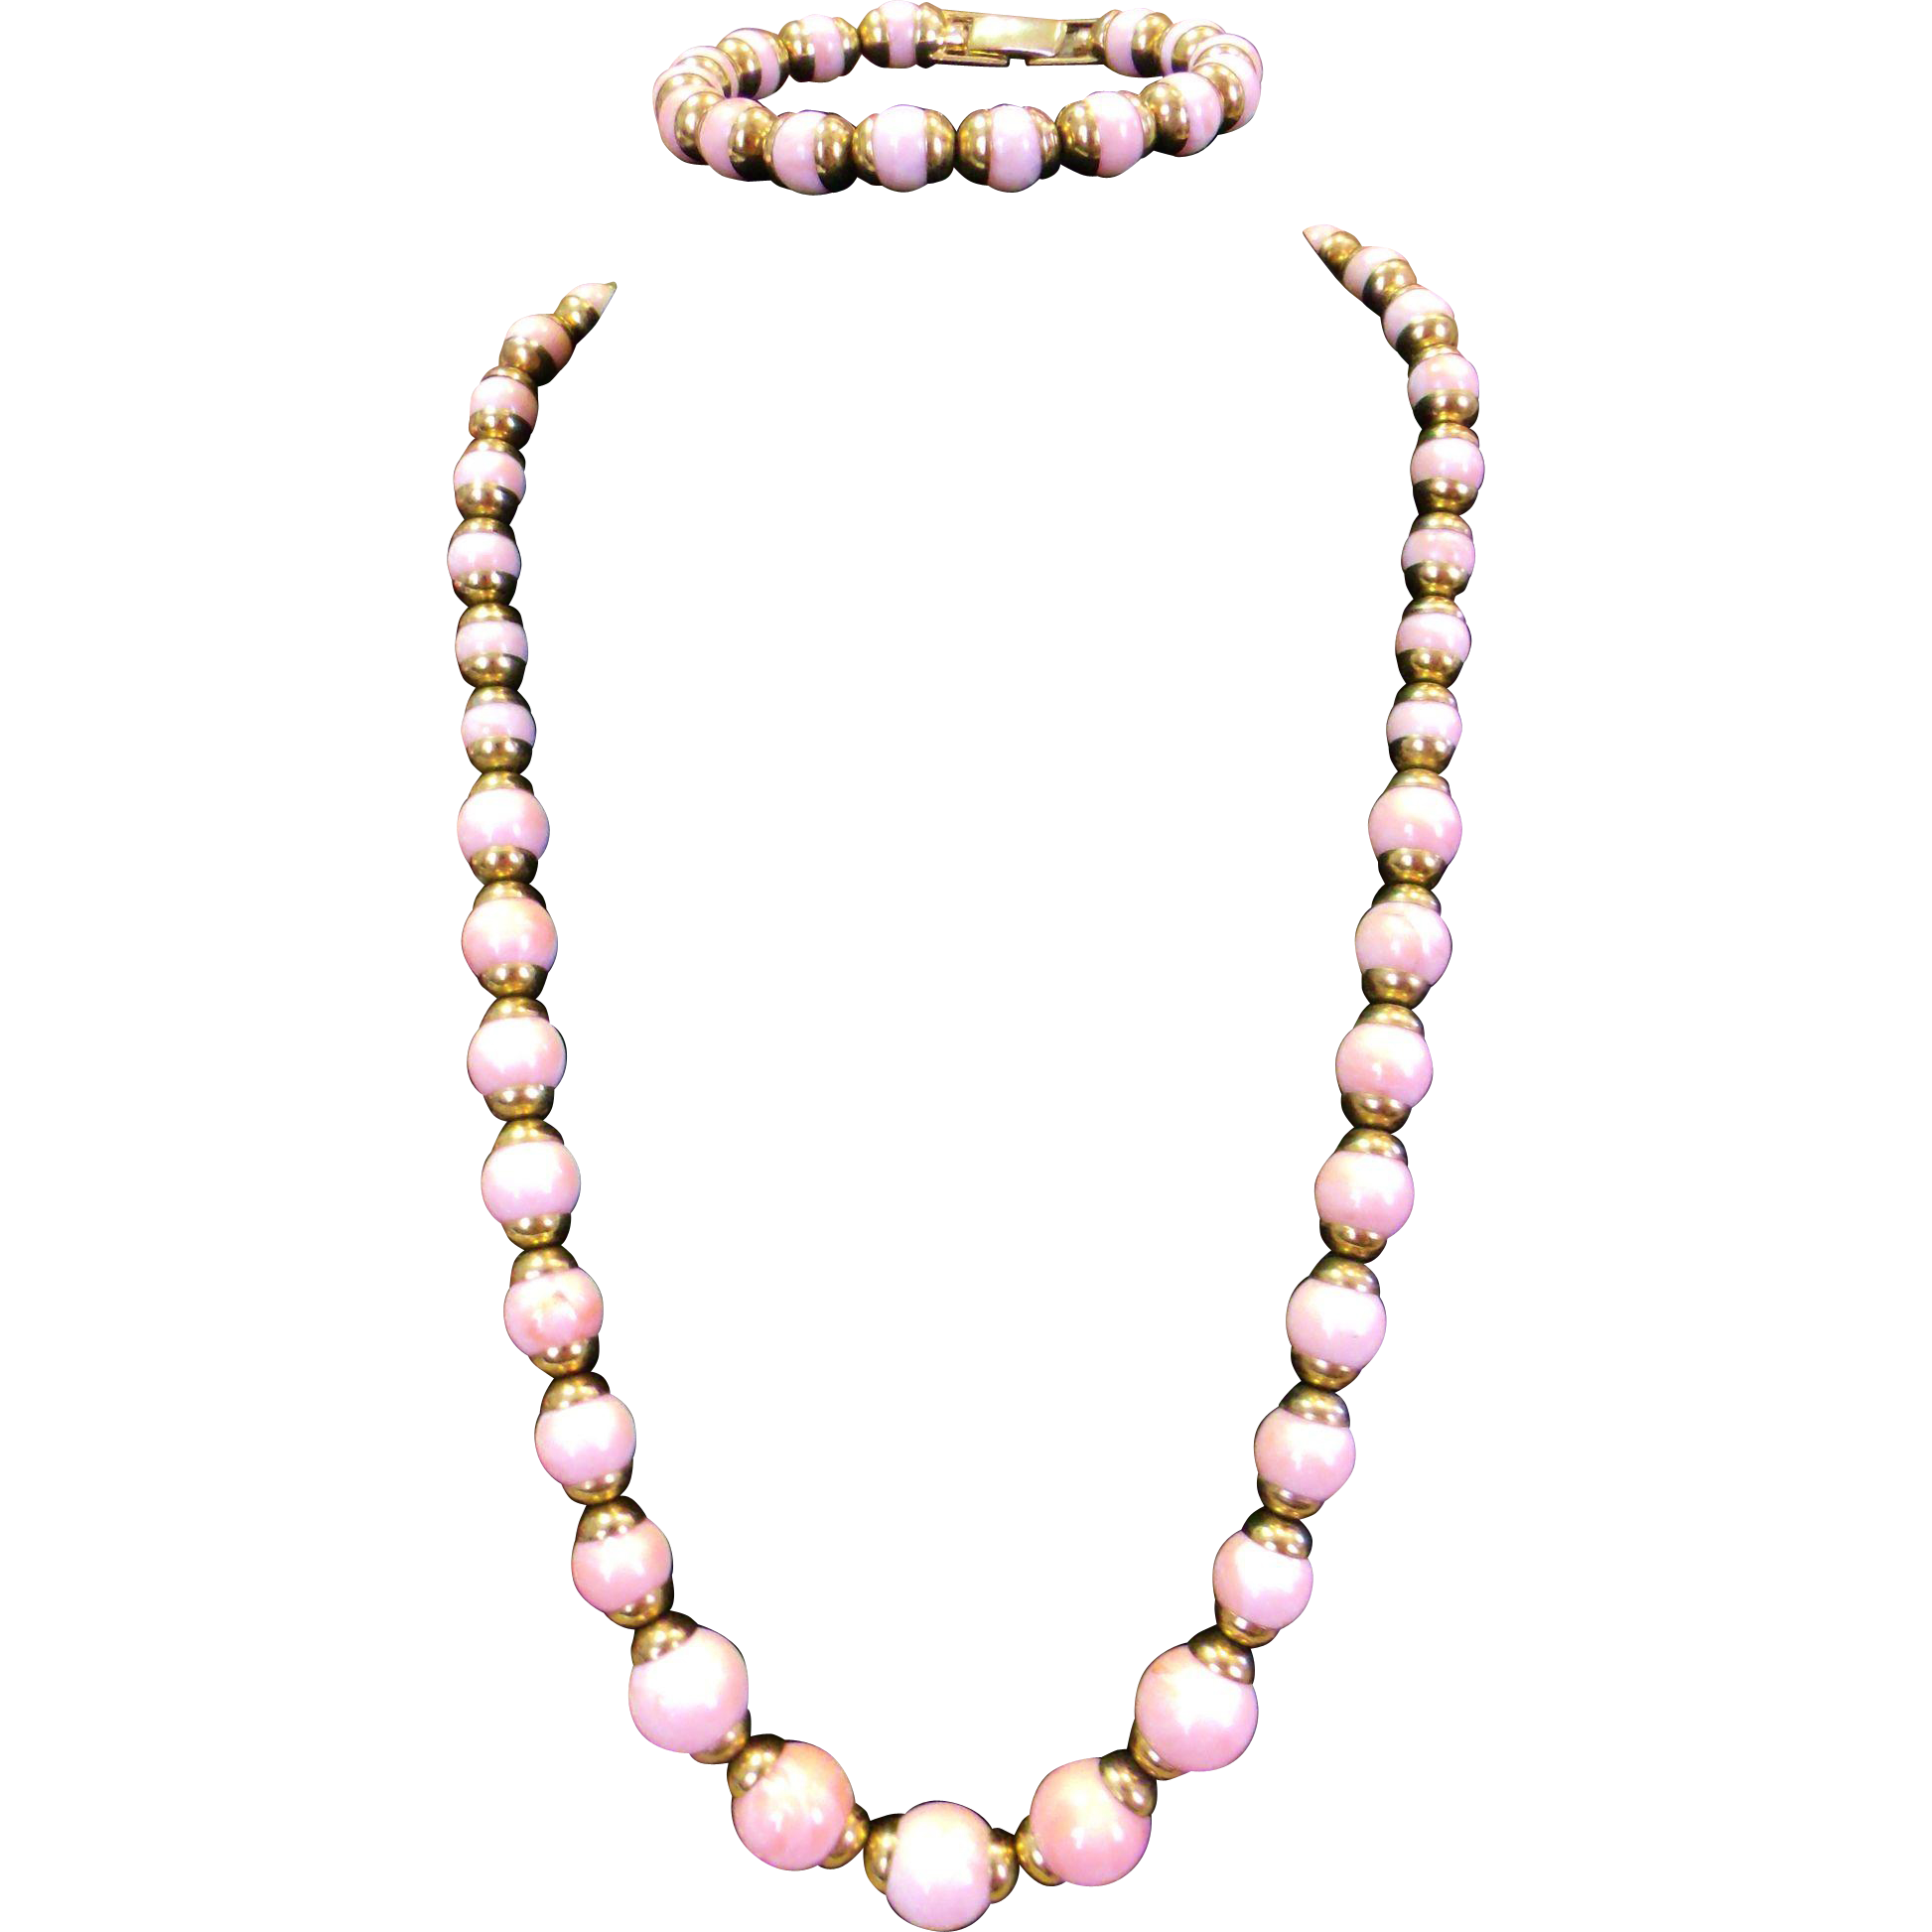 Swirled Pink Lucite Beaded Necklace & Bracelet Set w. Gold tone Caps - Gorgeous